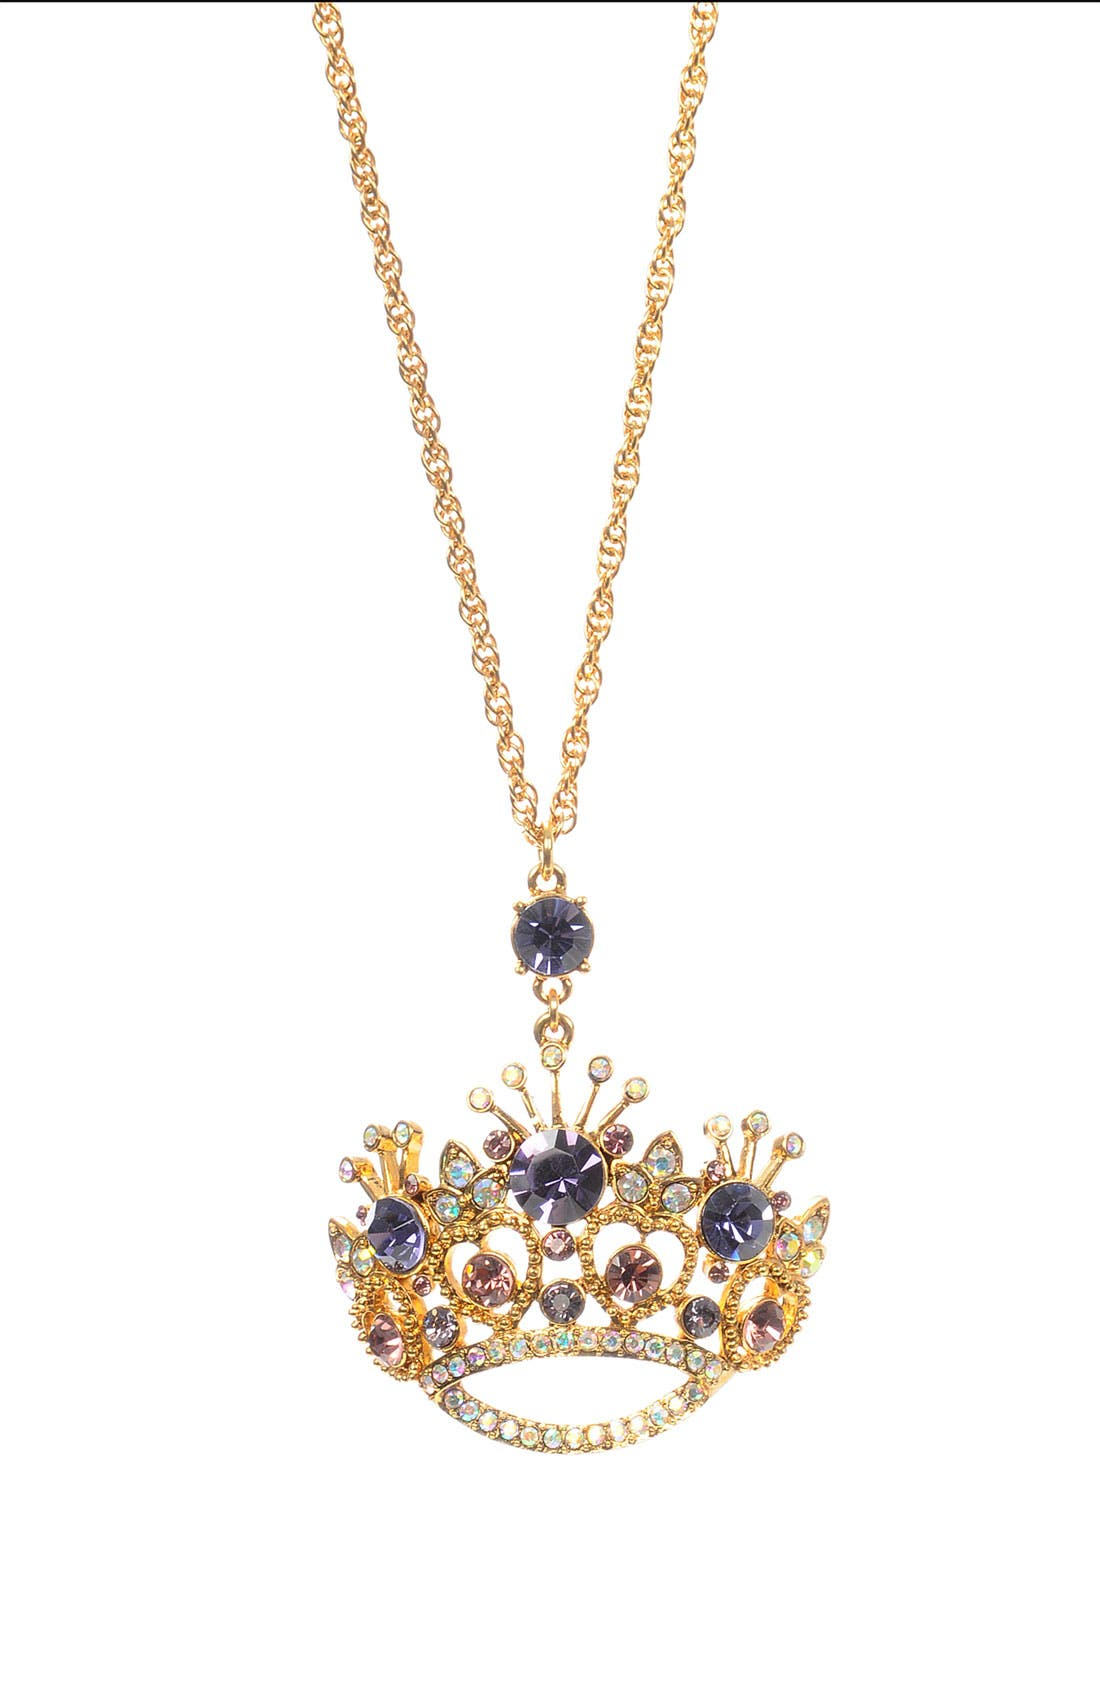 Main Image - Betsey Johnson 'Tzar' Crown Statement Pendant Long Necklace